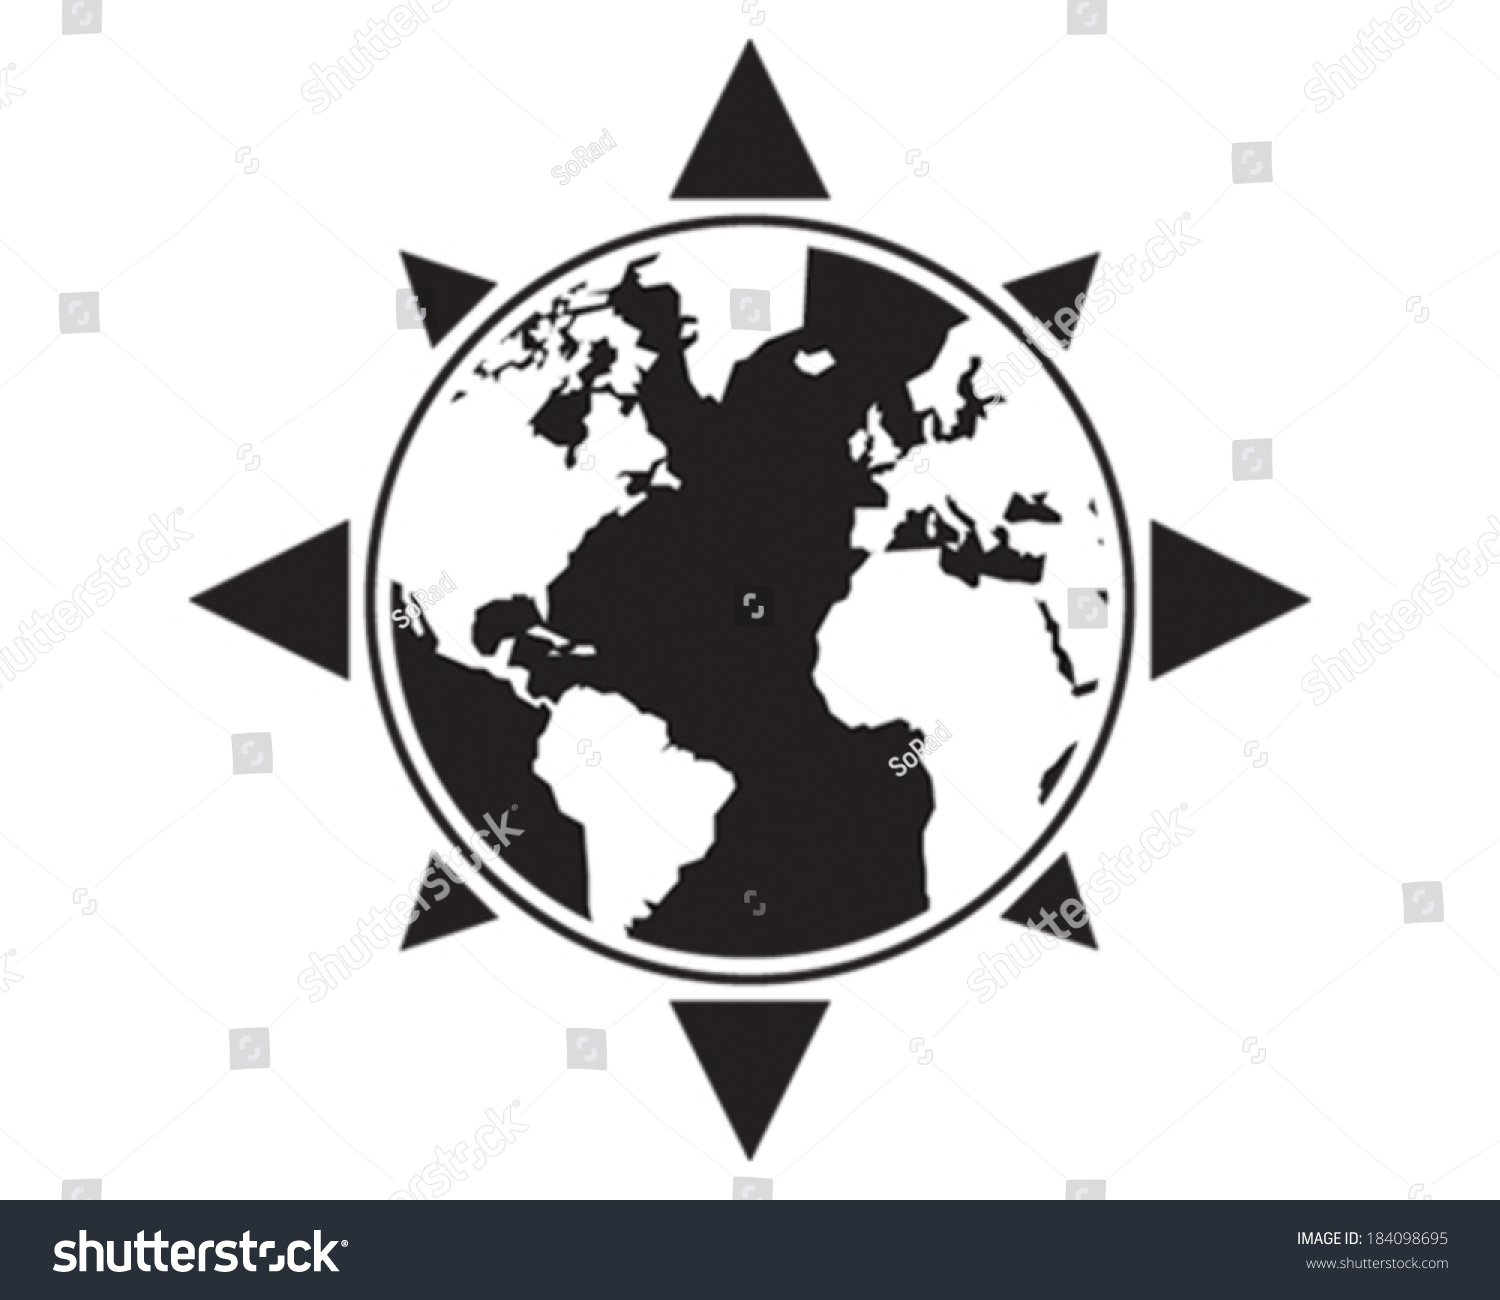 World Compass Stock Vector (Royalty Free) 184098695